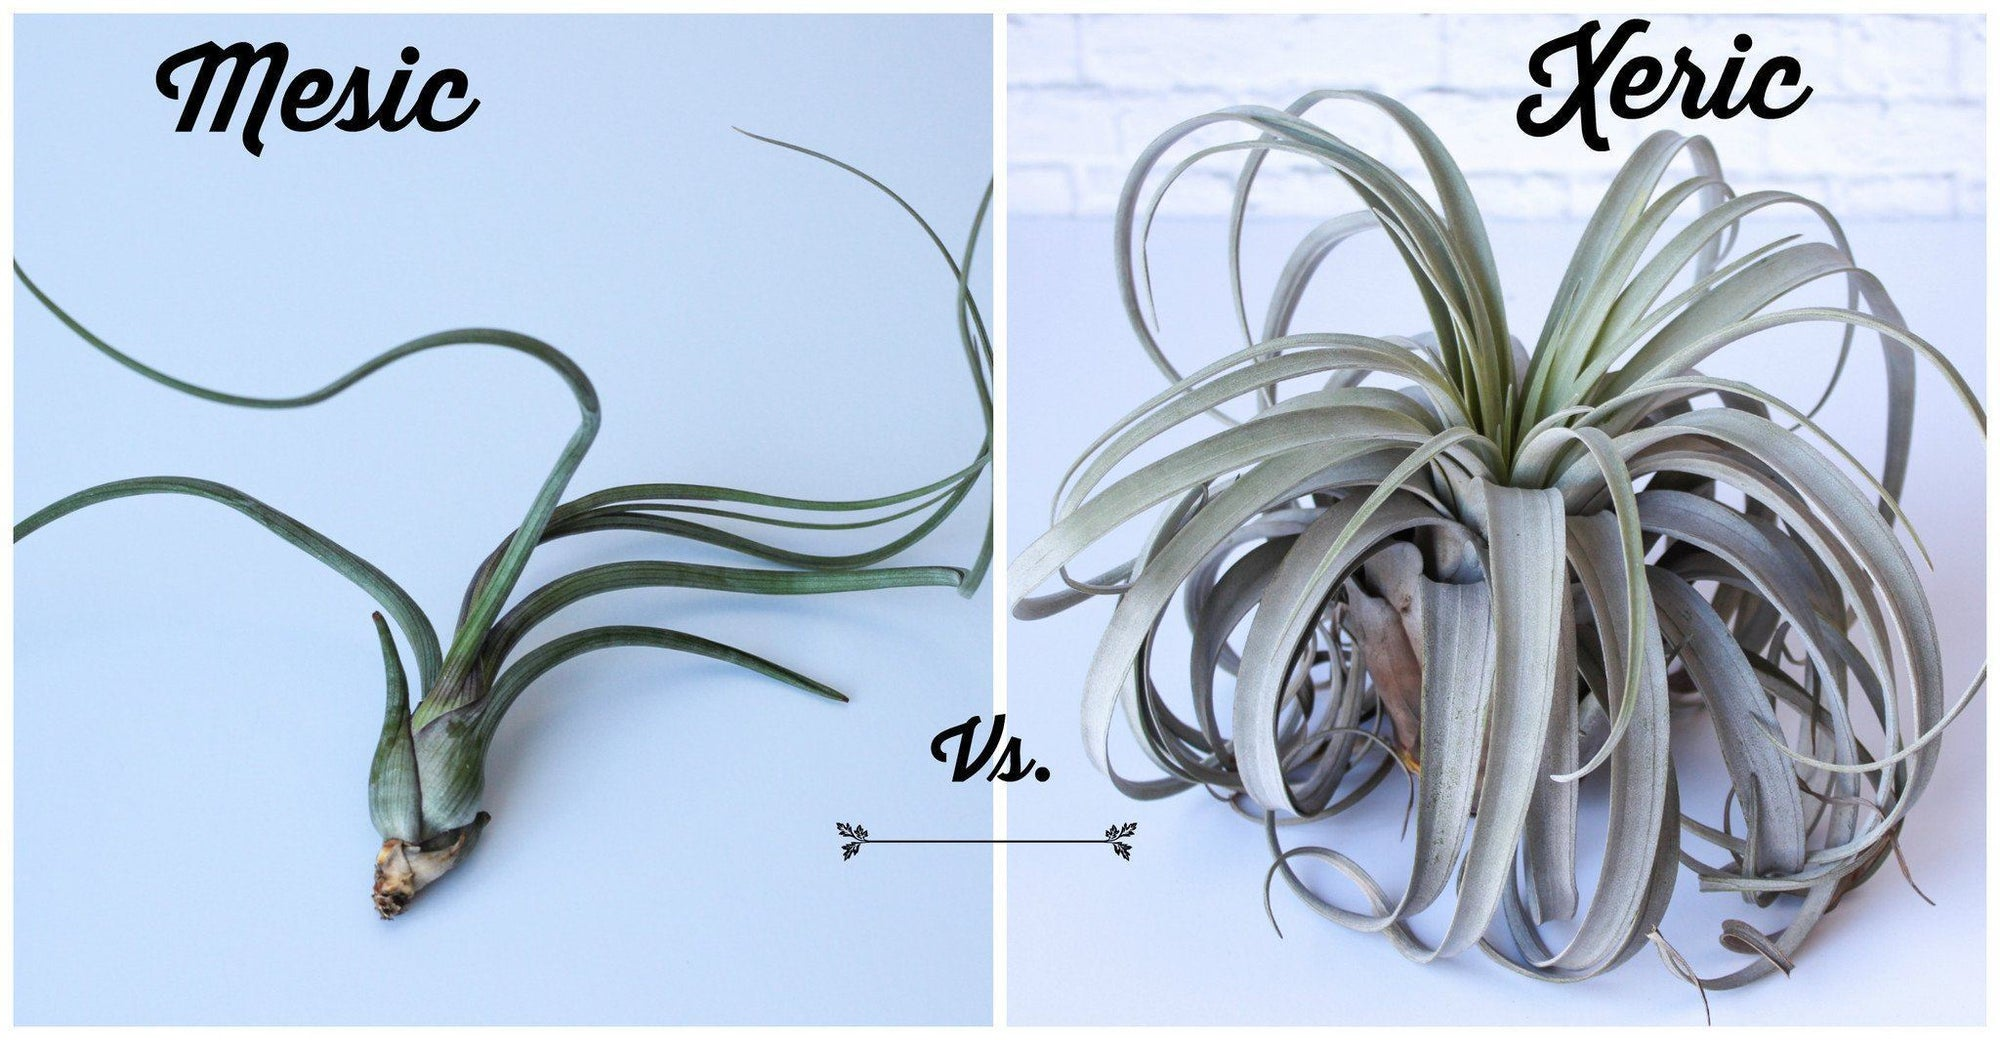 Mesic Air Plants Vs Xeric Air Plants